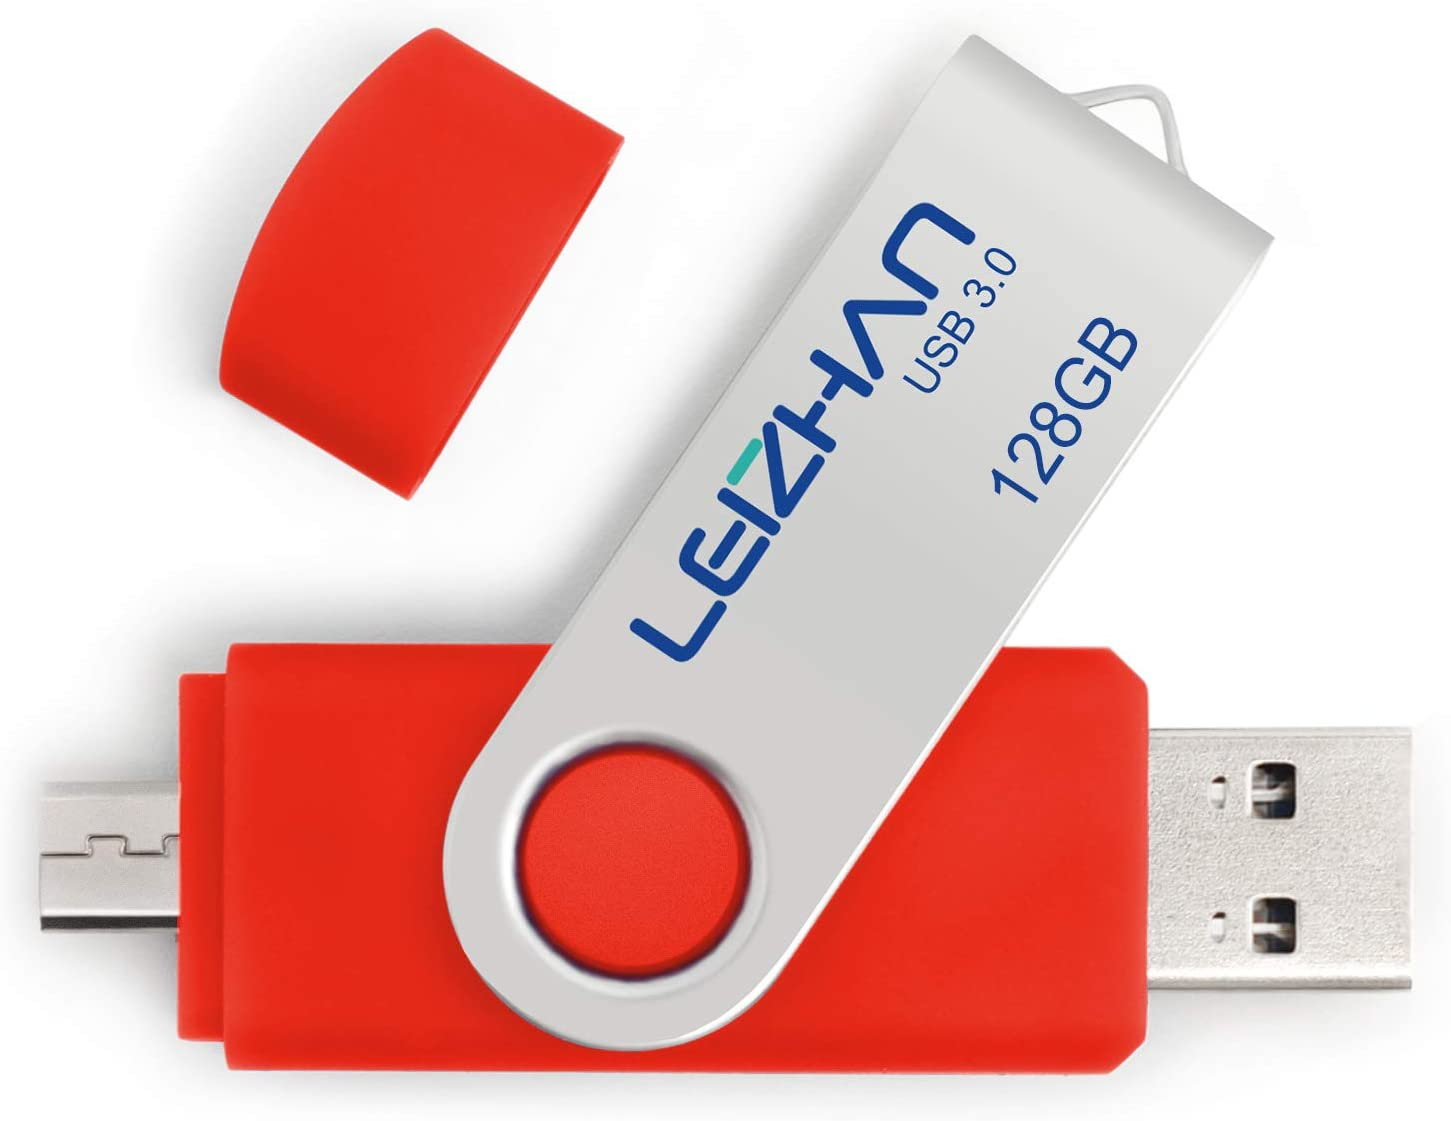 LEIZHAN 128GB USB Flash Max 63% OFF Drives Po Drive safety Micro with Dual-Port